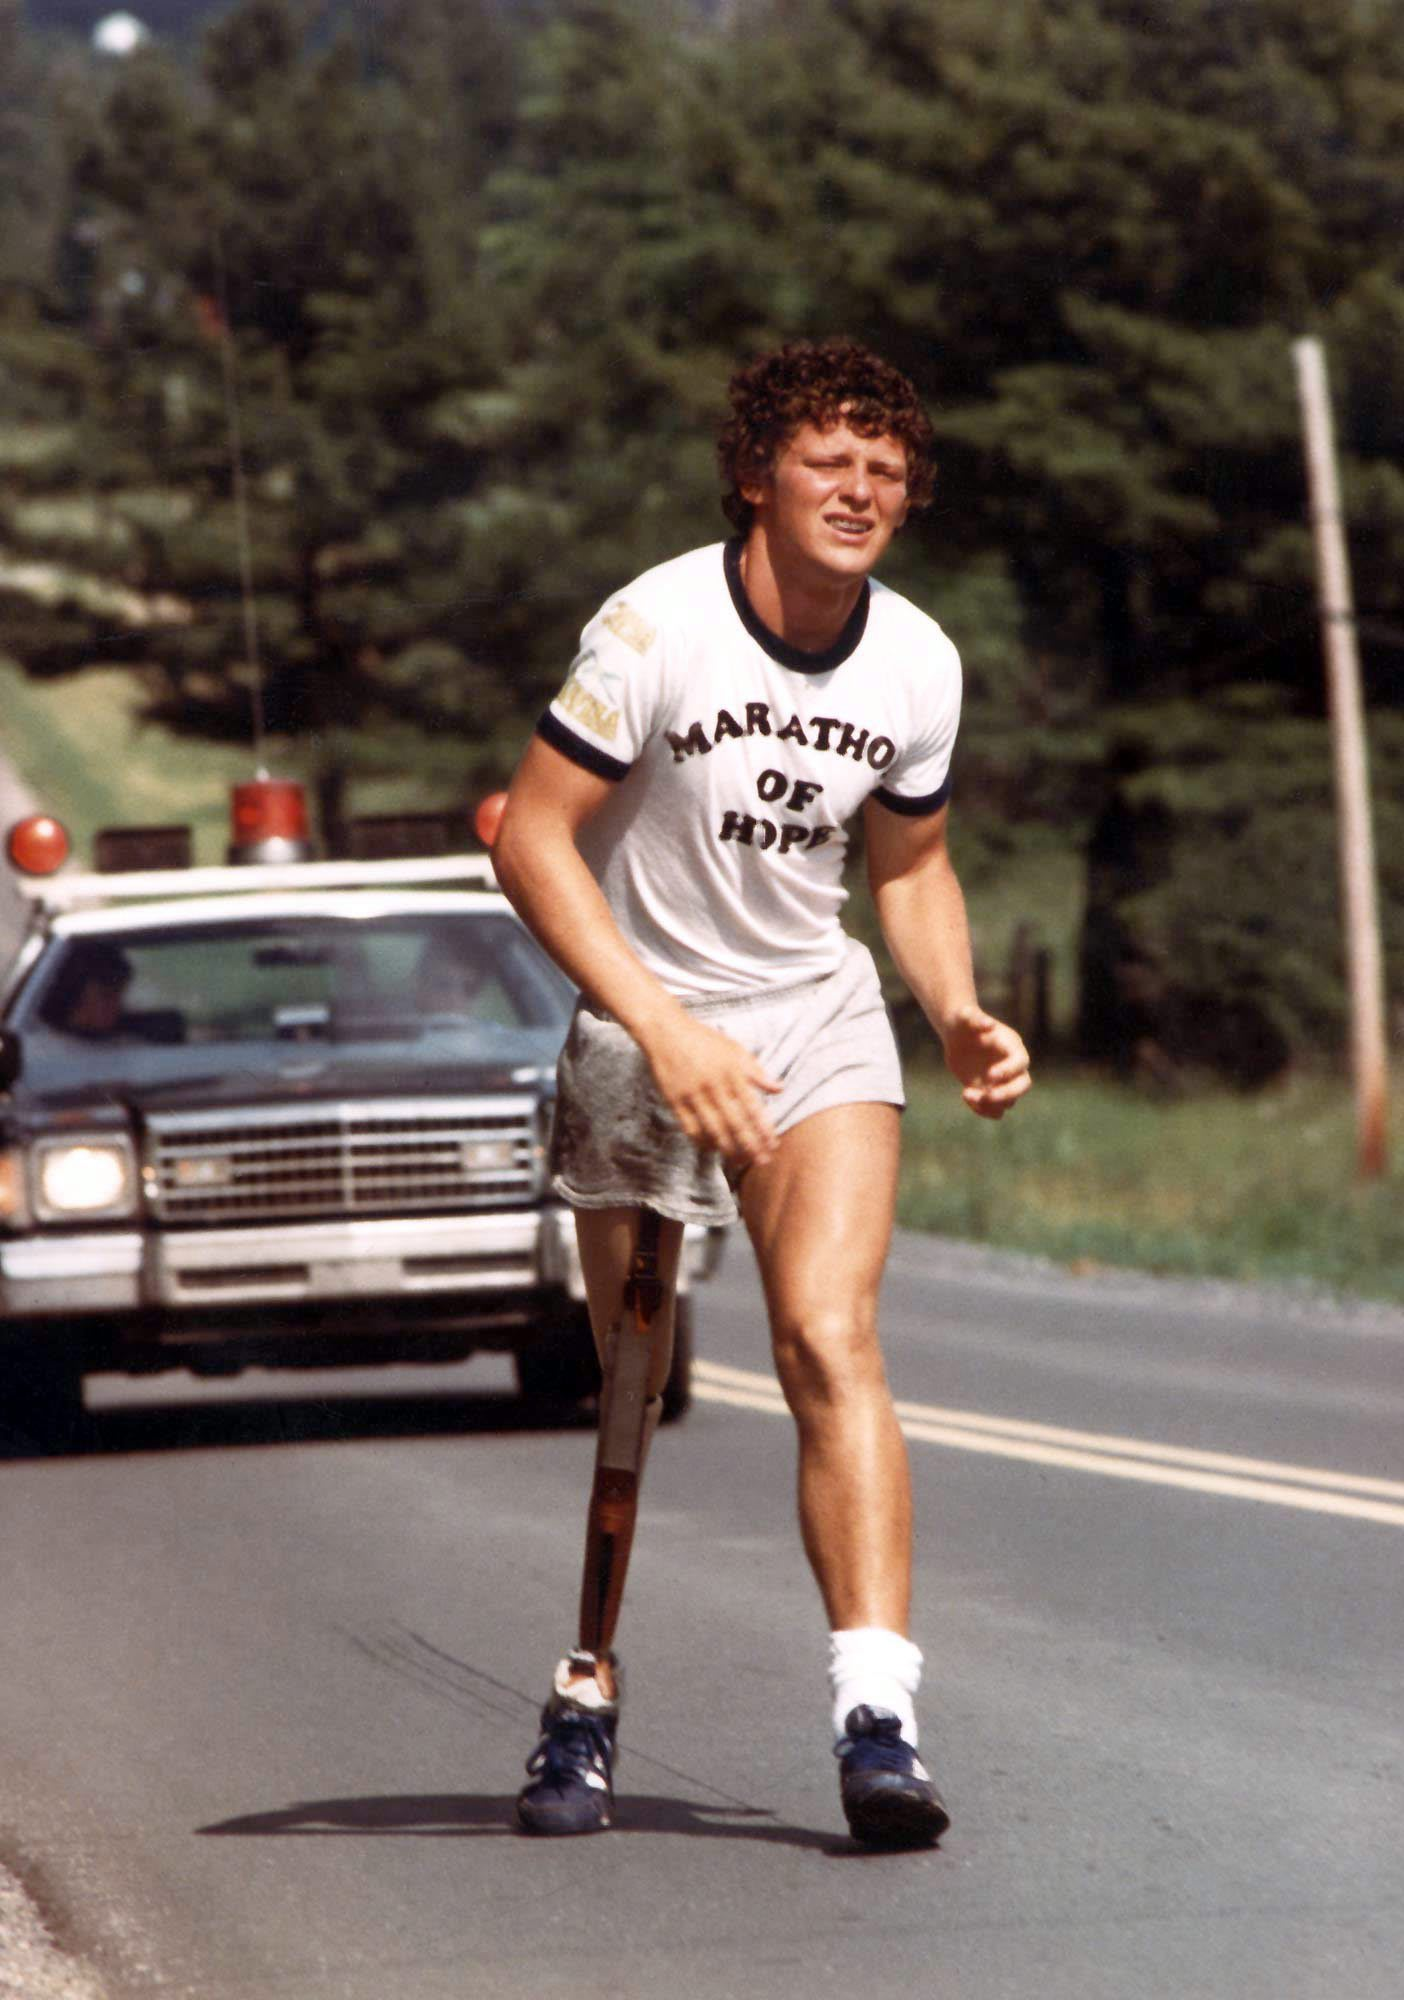 a biography of canadian famous athlete terry fox Terrance stanley terry fox cc od (july 28, 1958 – june 28, 1981) was a canadian athlete, humanitarian, and cancer research activist in 1980, with one leg having been amputated due to cancer, he embarked on an east to west cross-canada run to raise money and awareness for cancer research.